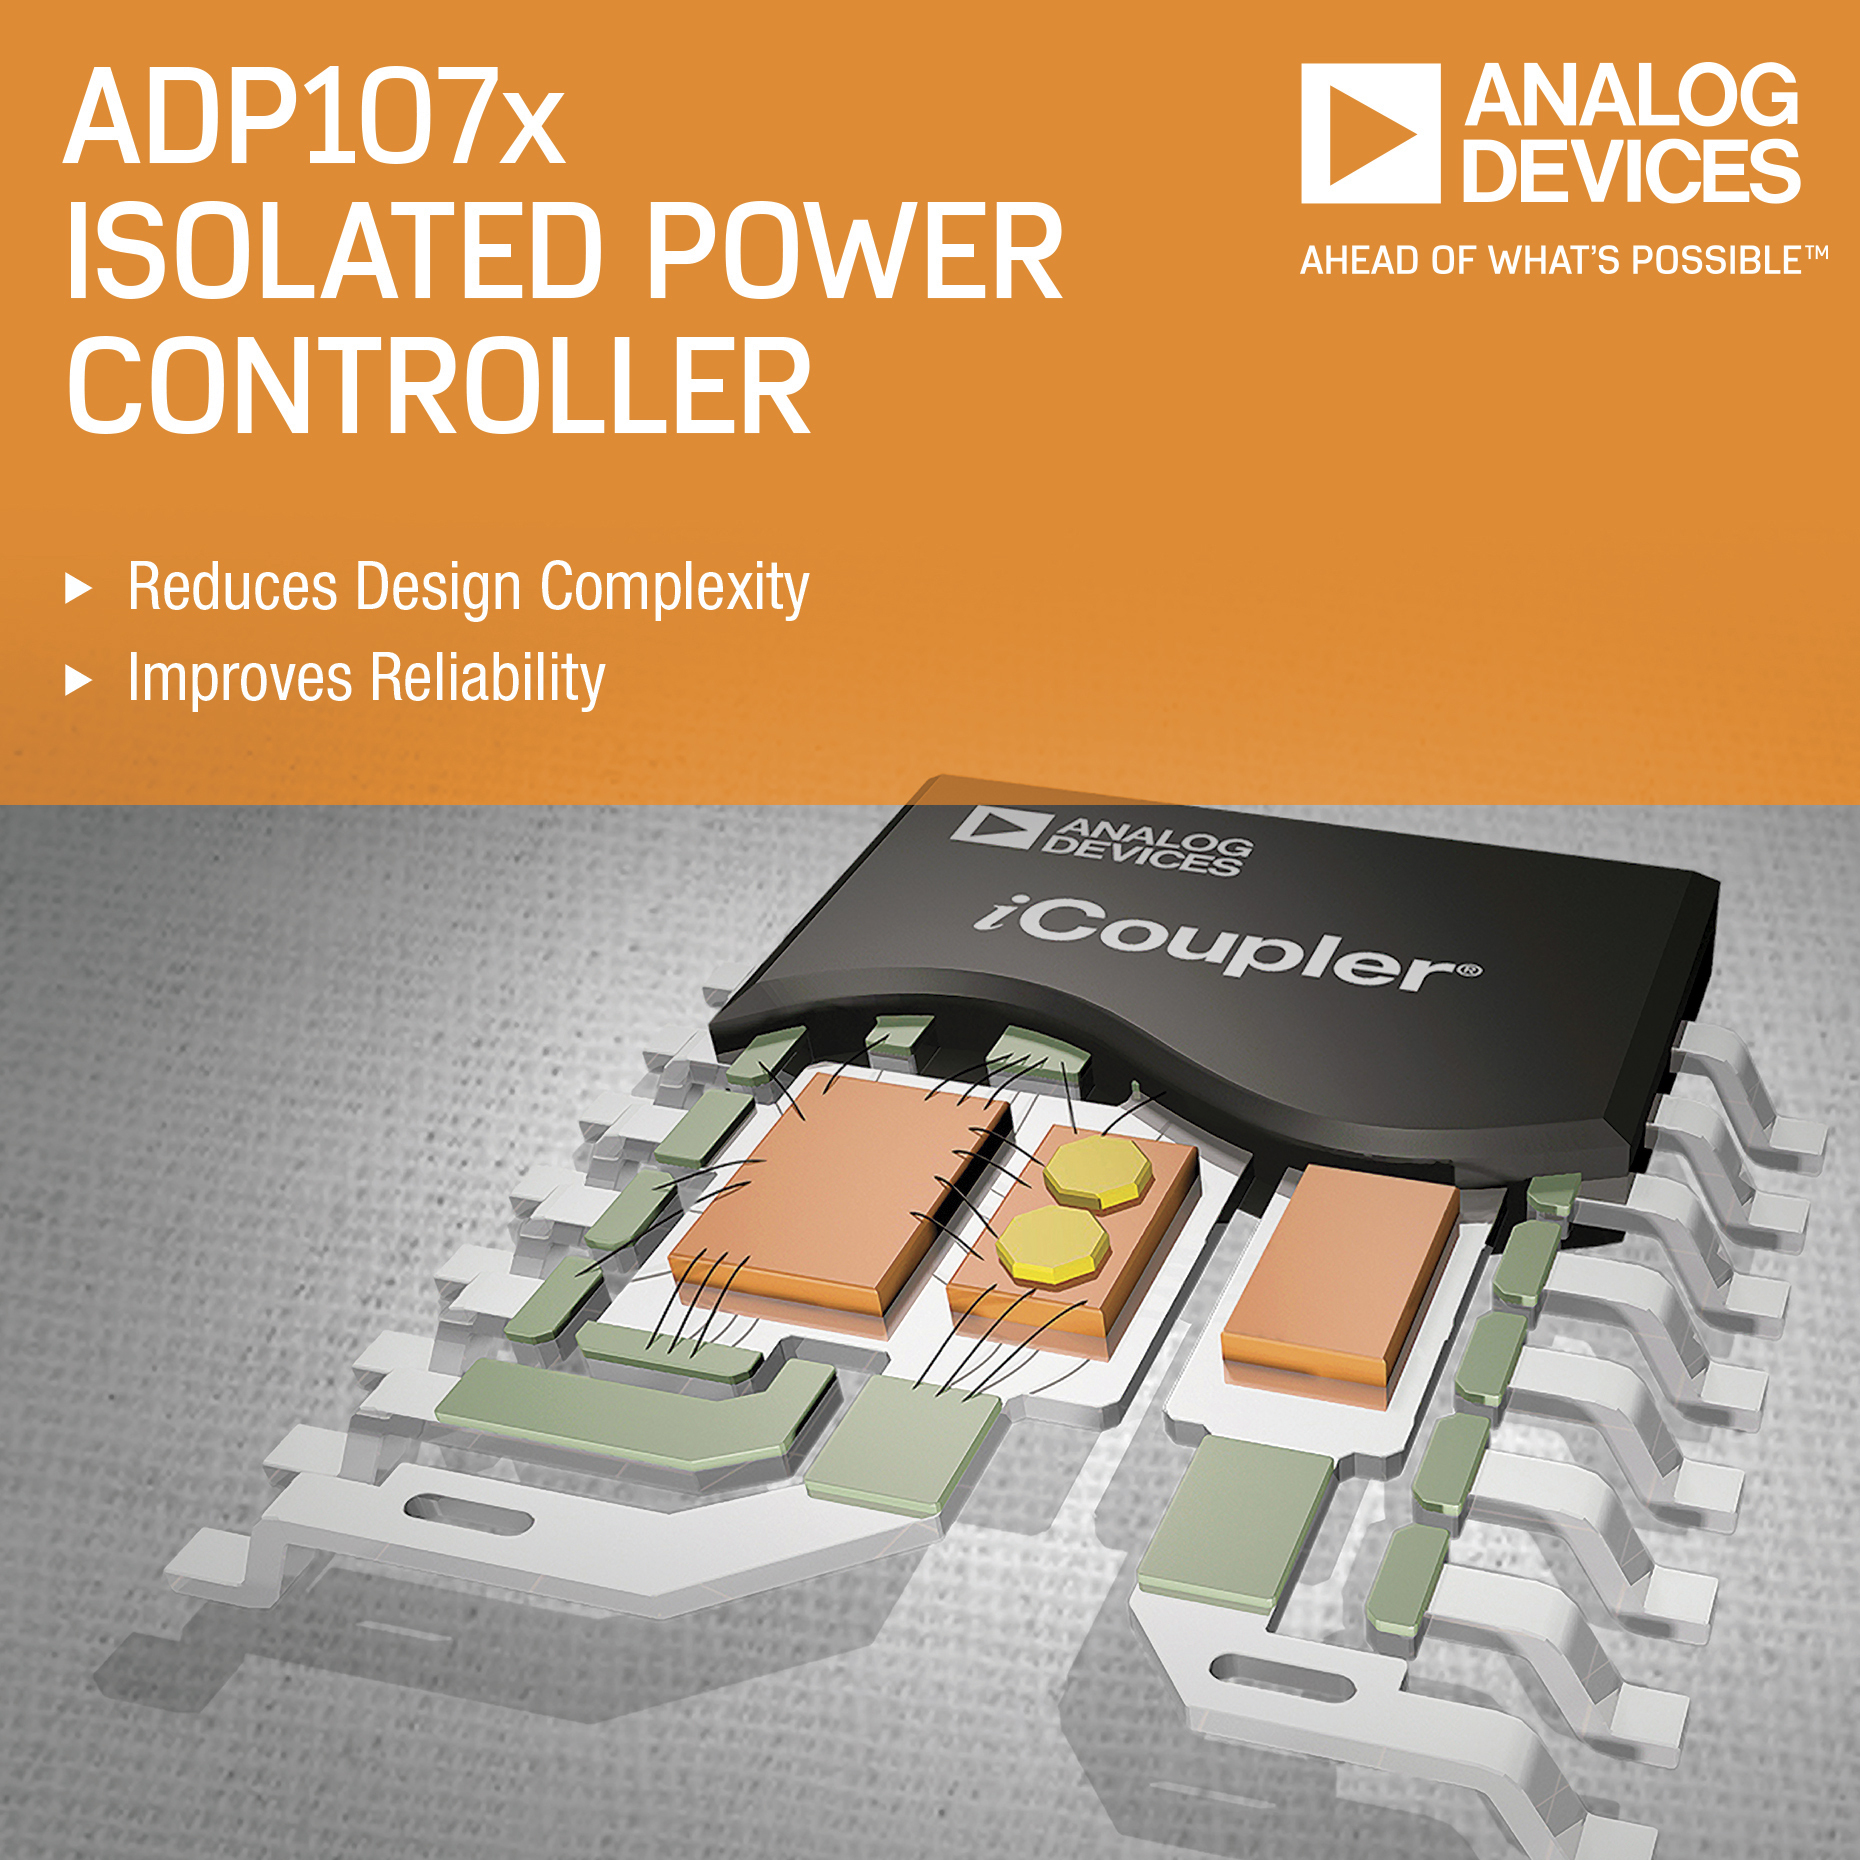 Analog Devices' Integrated, Isolated Power Controller Series Reduces Design Complexity and Improves System Reliability (Graphic: Business Wire)